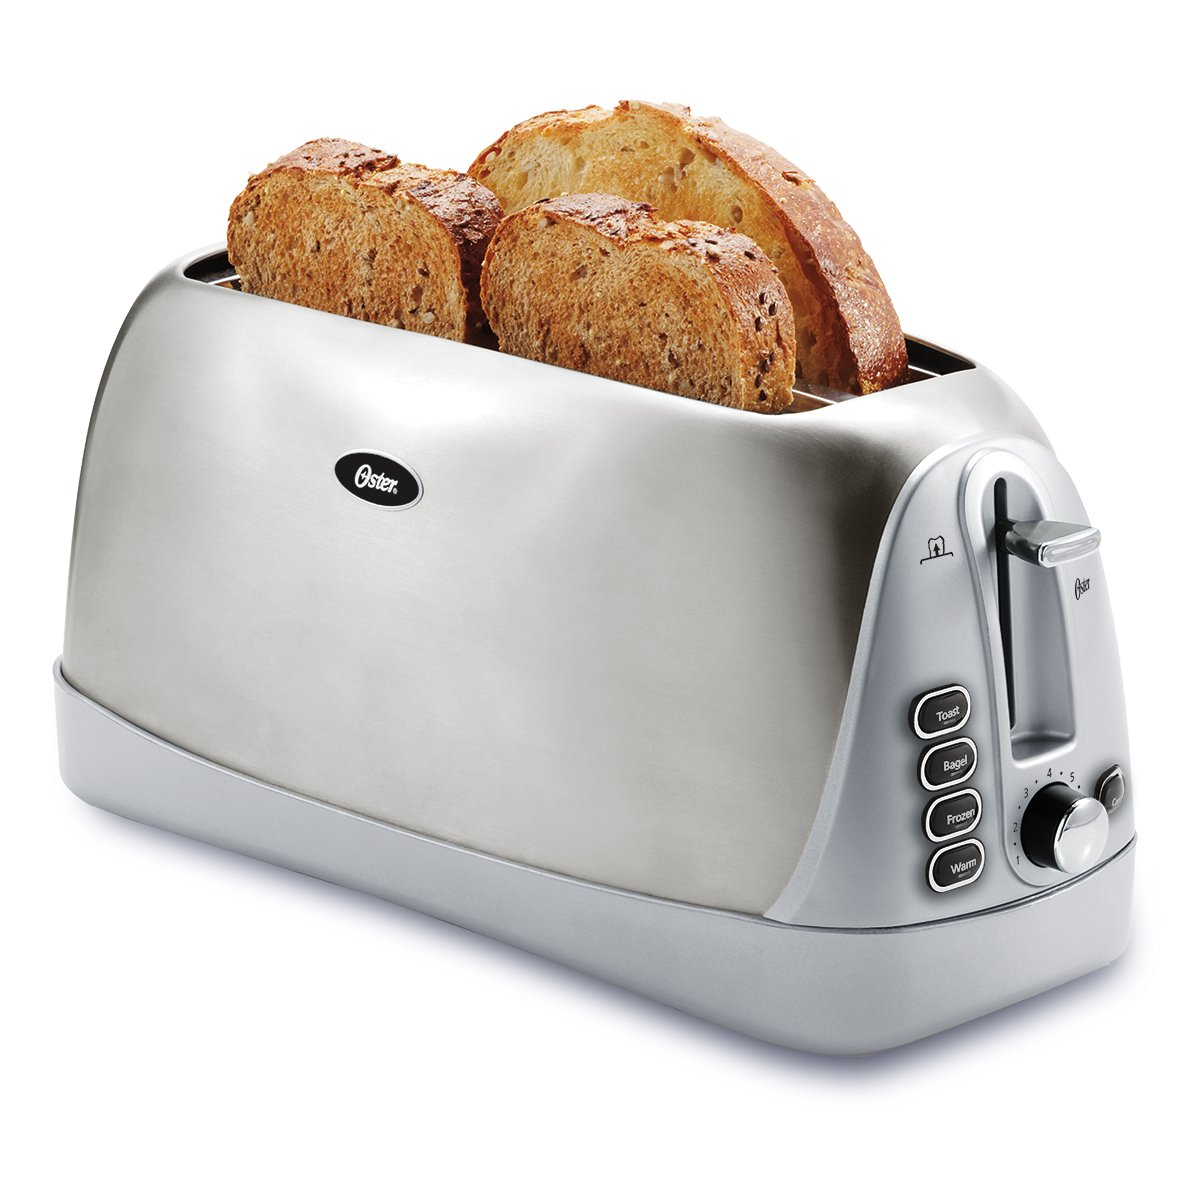 Oster Long Slot 4-Slice Toaster, Stainless Steel (TSSTTR6330-NP) by Oster